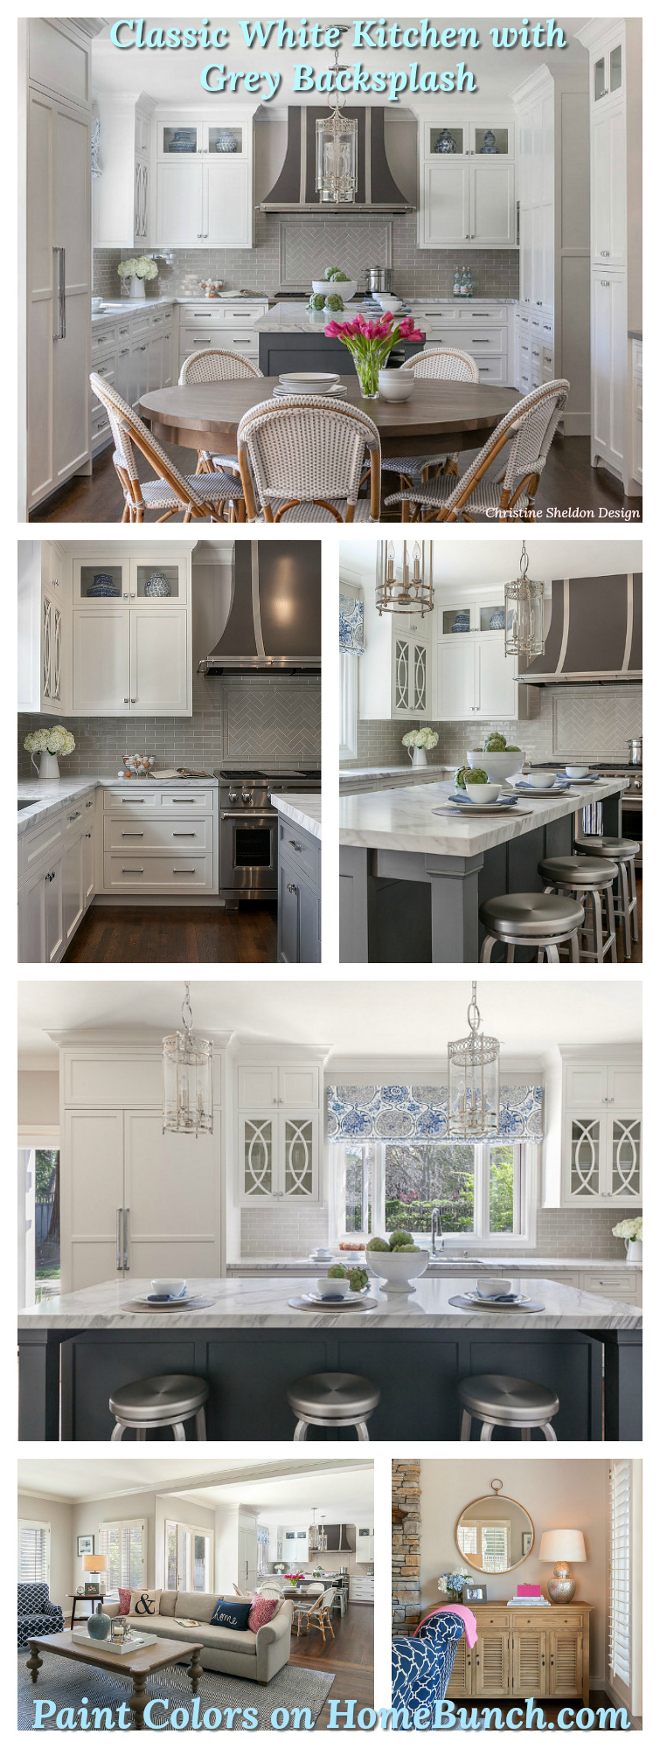 Classic White Kitchen with Grey Backsplash